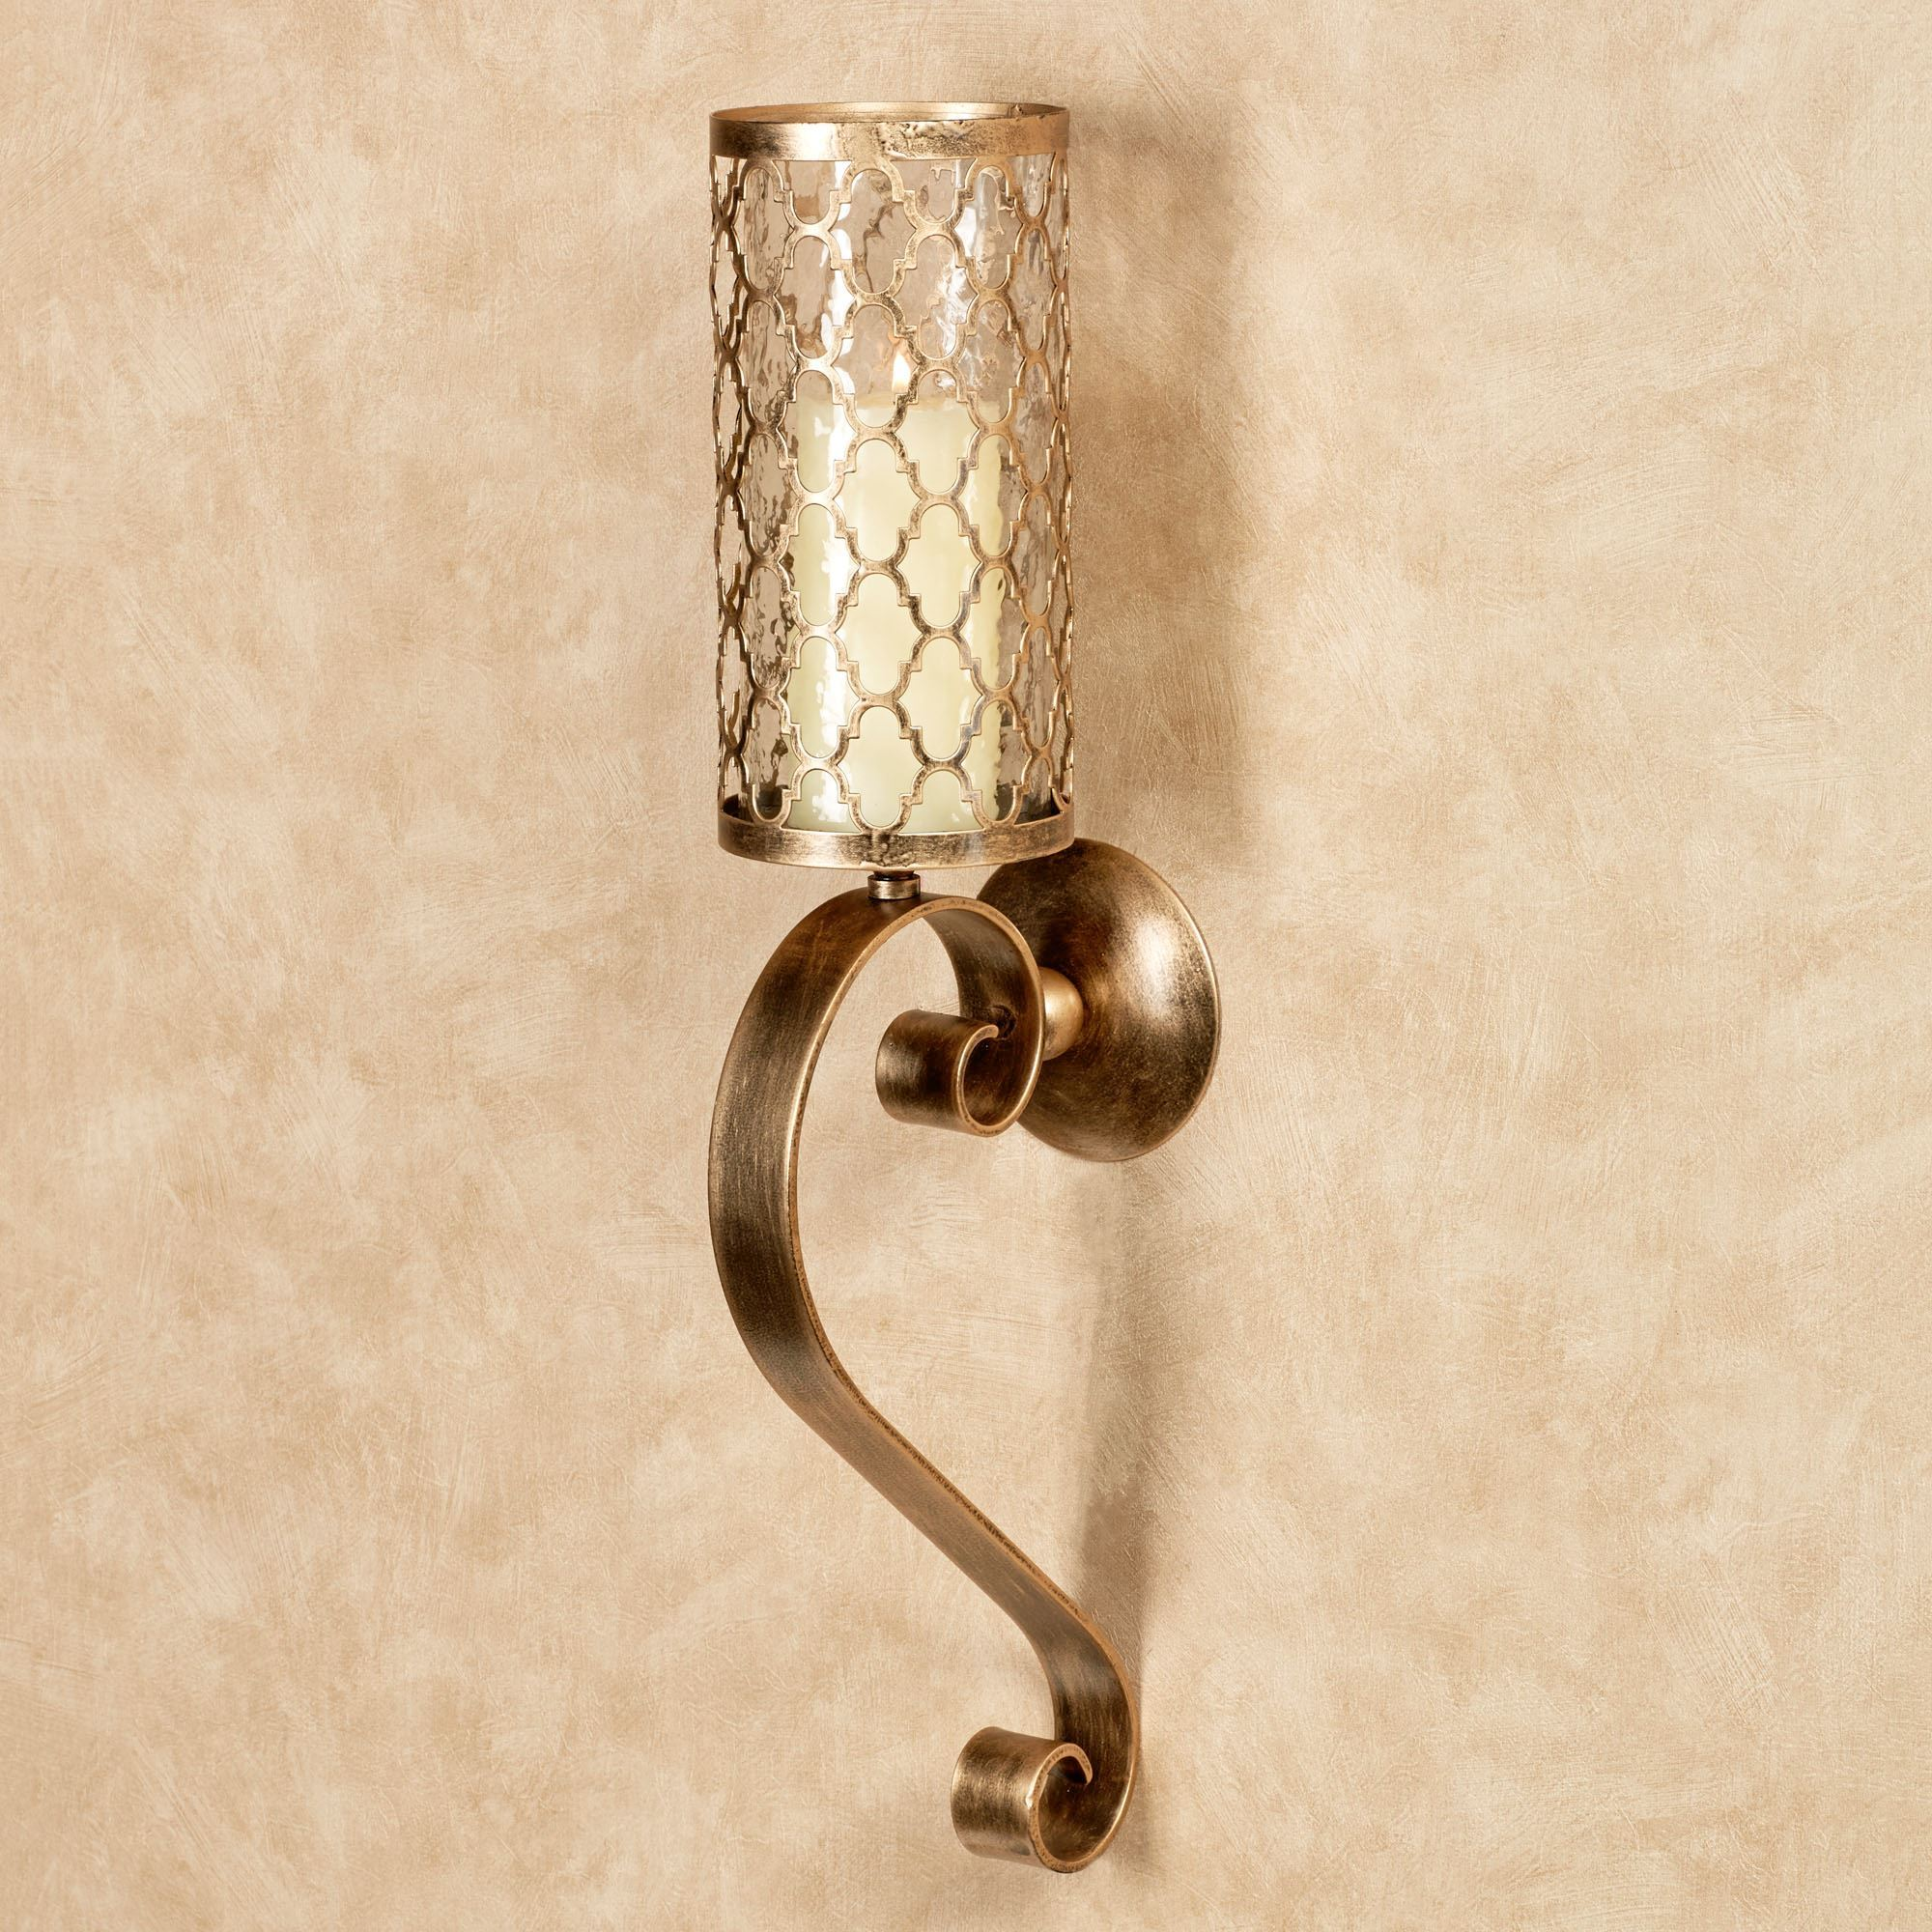 with silk arm new ornate itm antique lights shades light af lighting bronze sconce wall